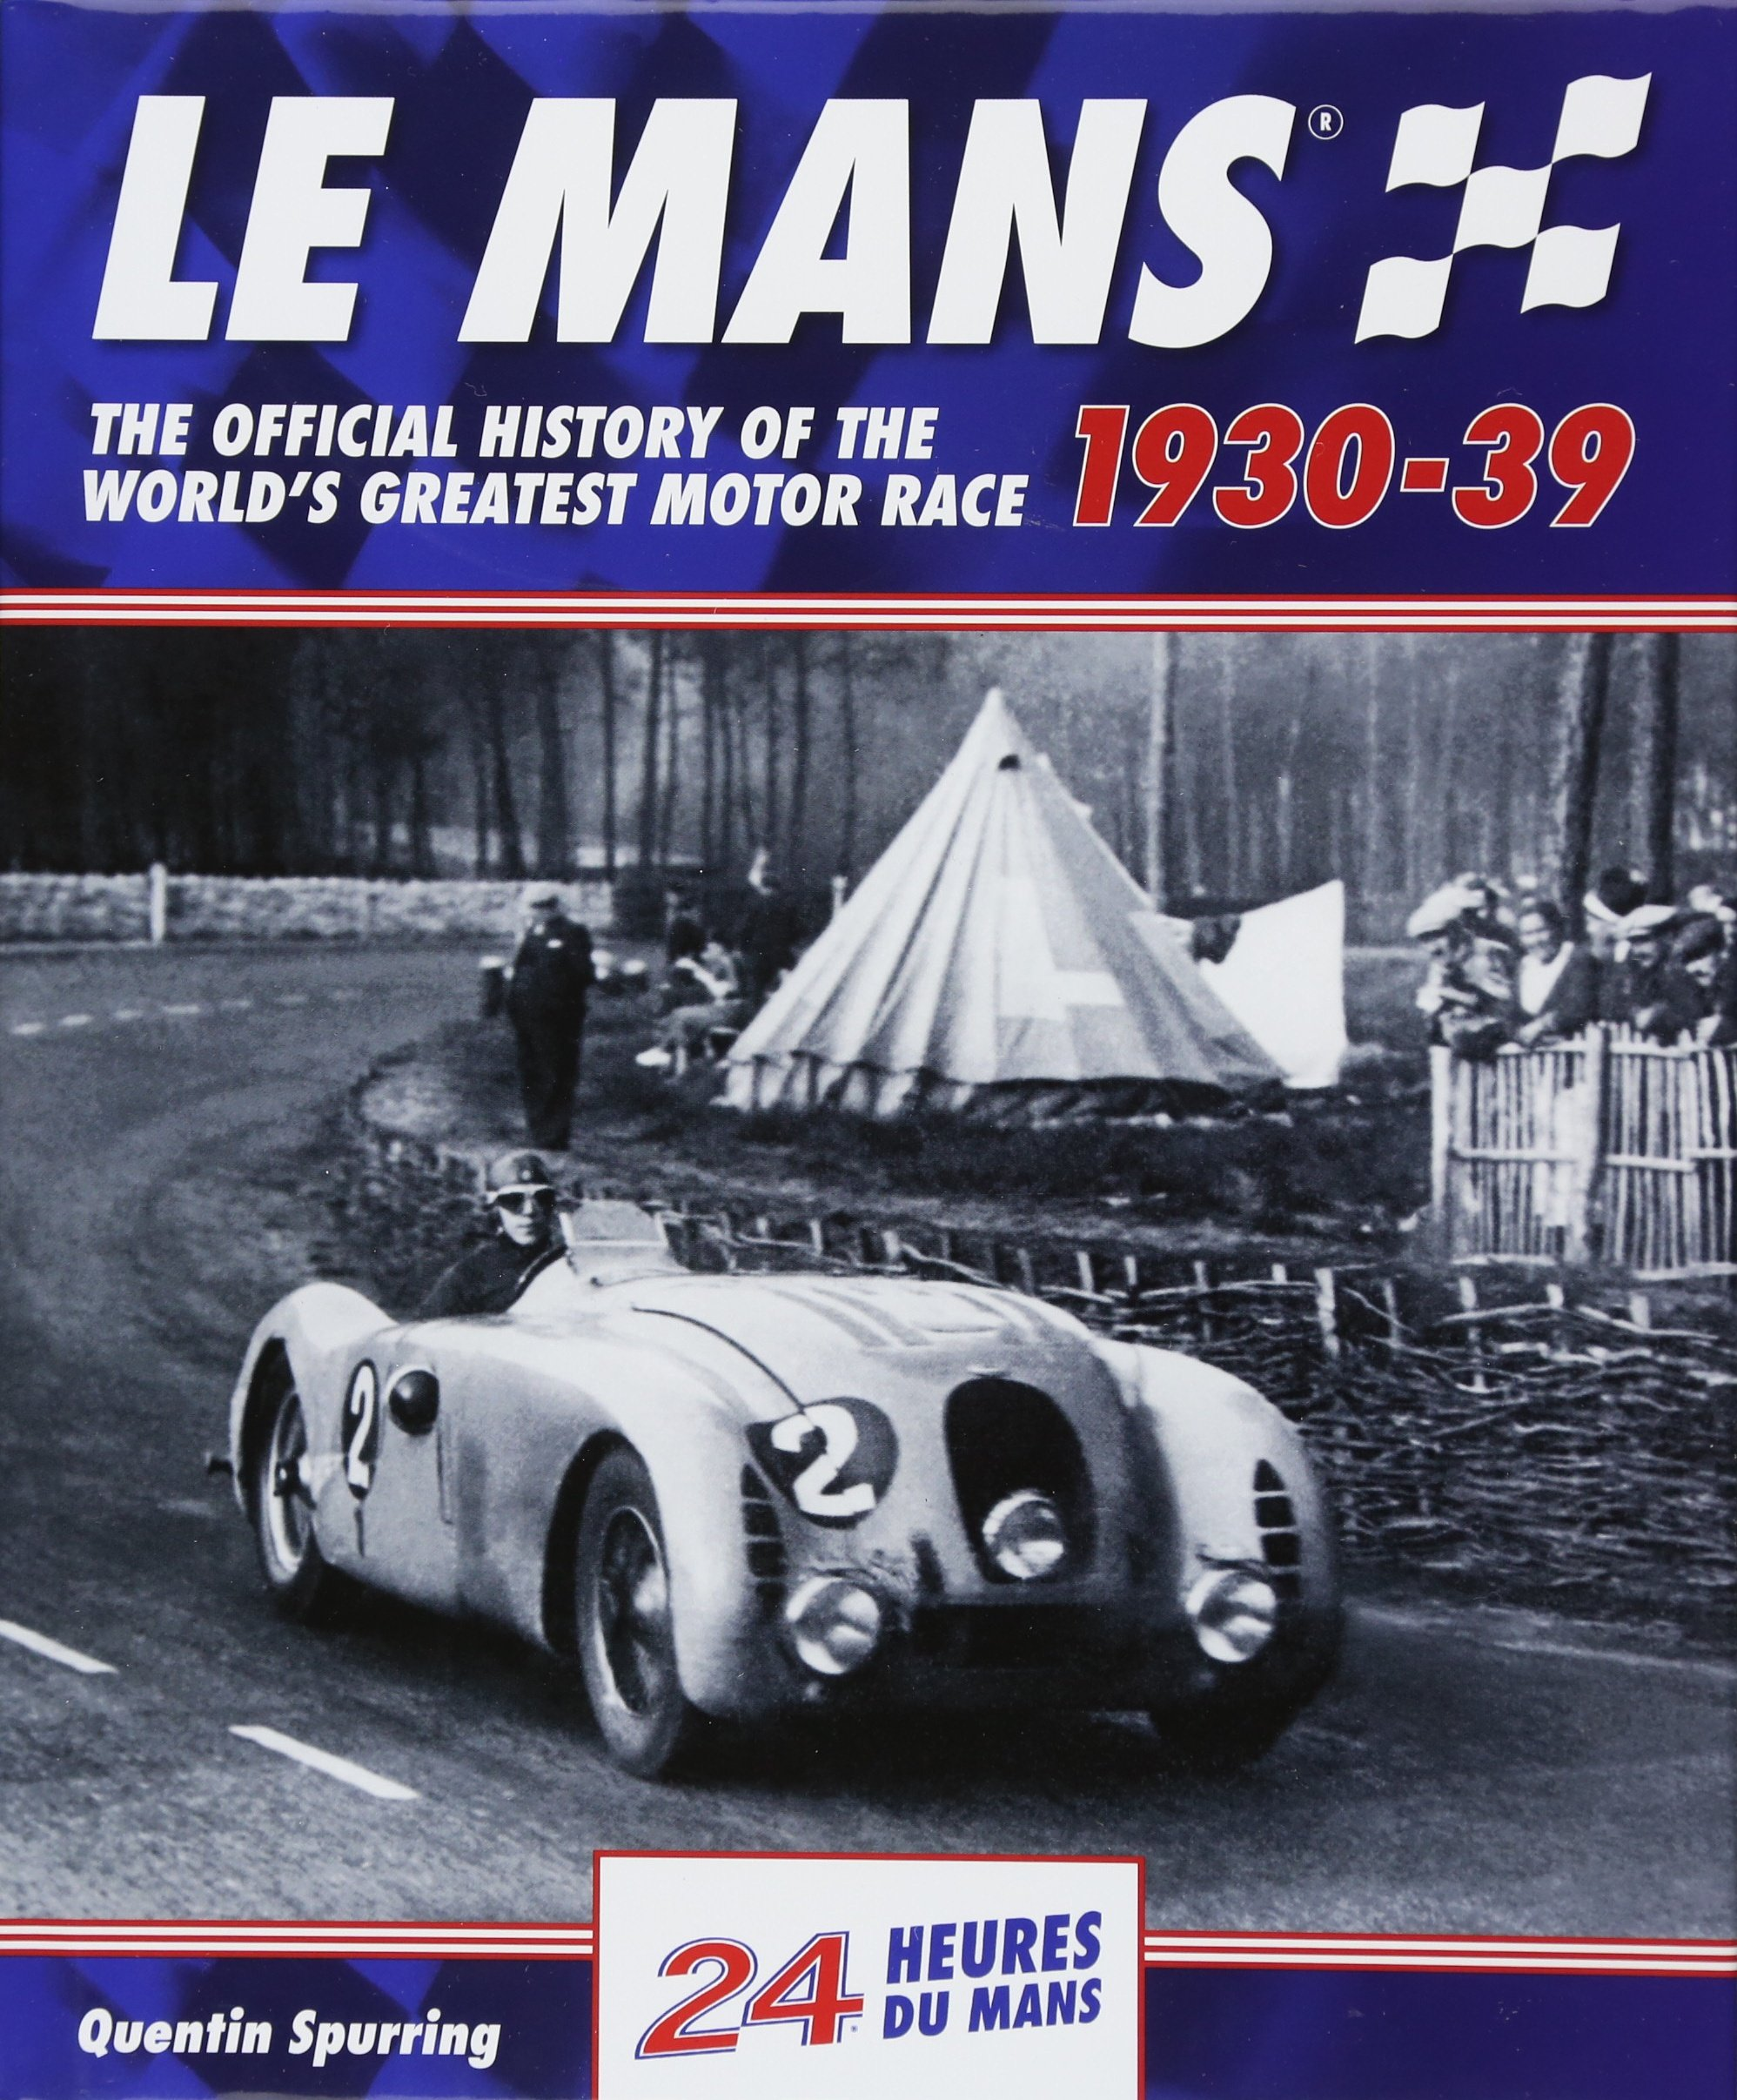 Le Mans: The Official History of the World's Greatest Motor Race